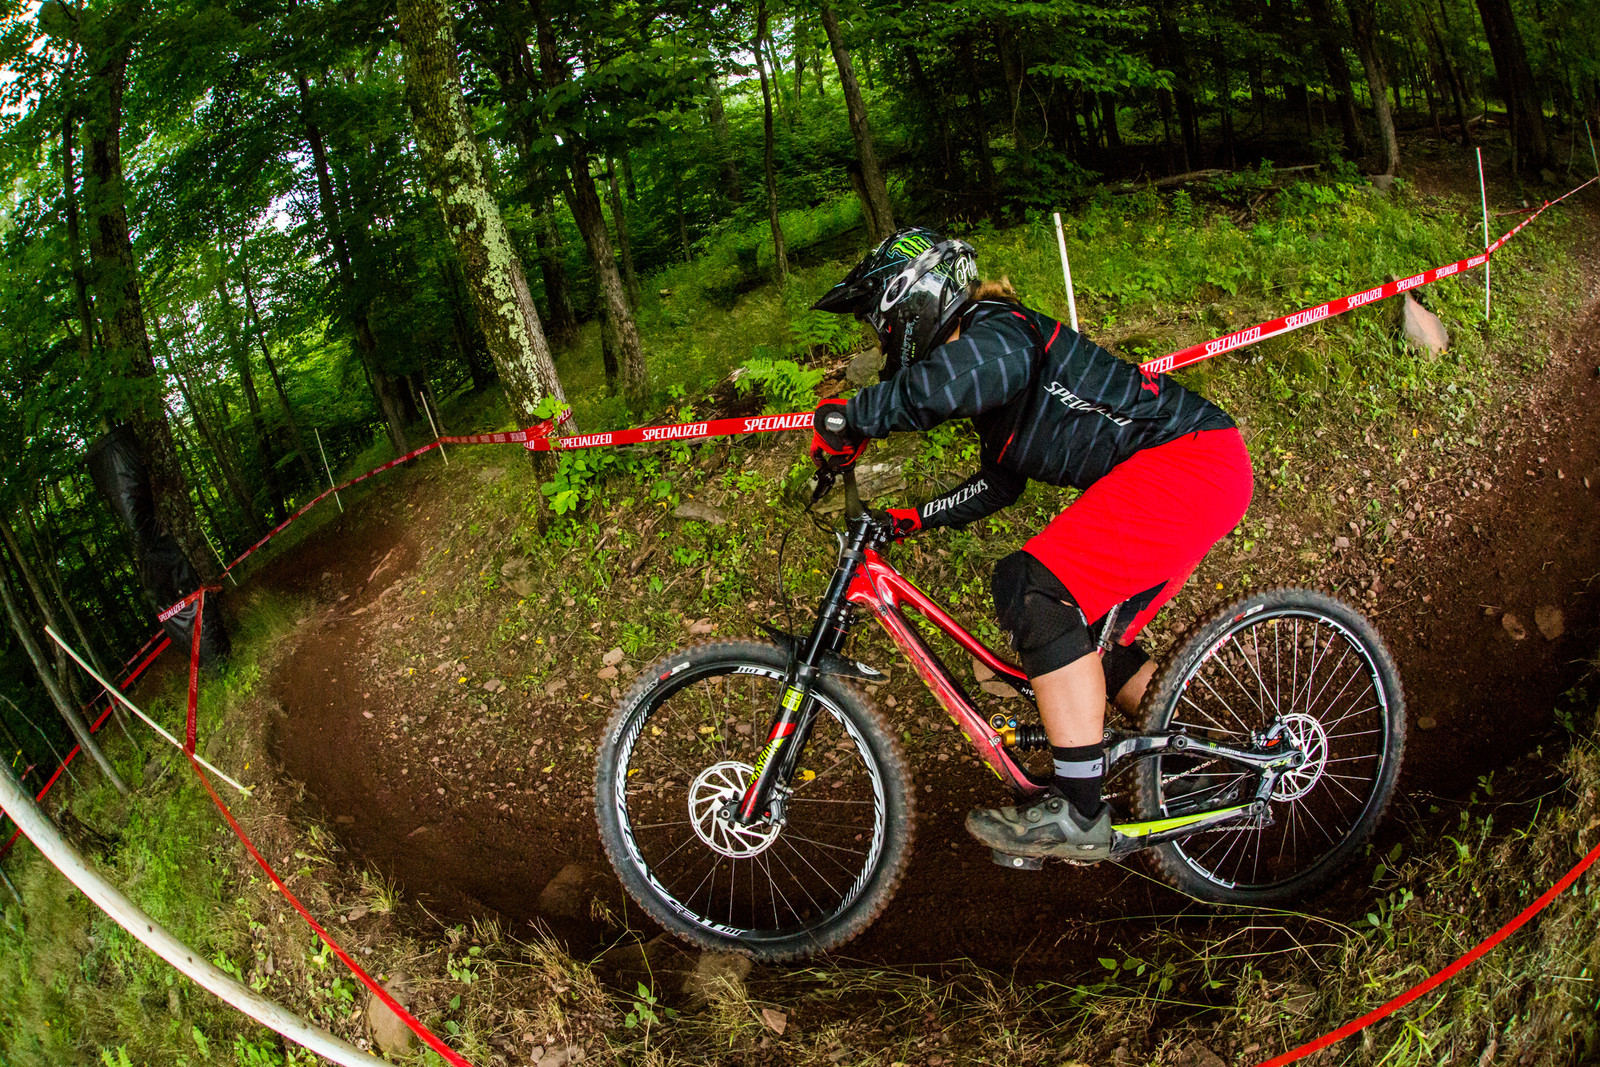 2017 Pro GRT Pro Women's overall winner, Angelina Palermo, railing one of the few bermed corners into 3rd place on the day.